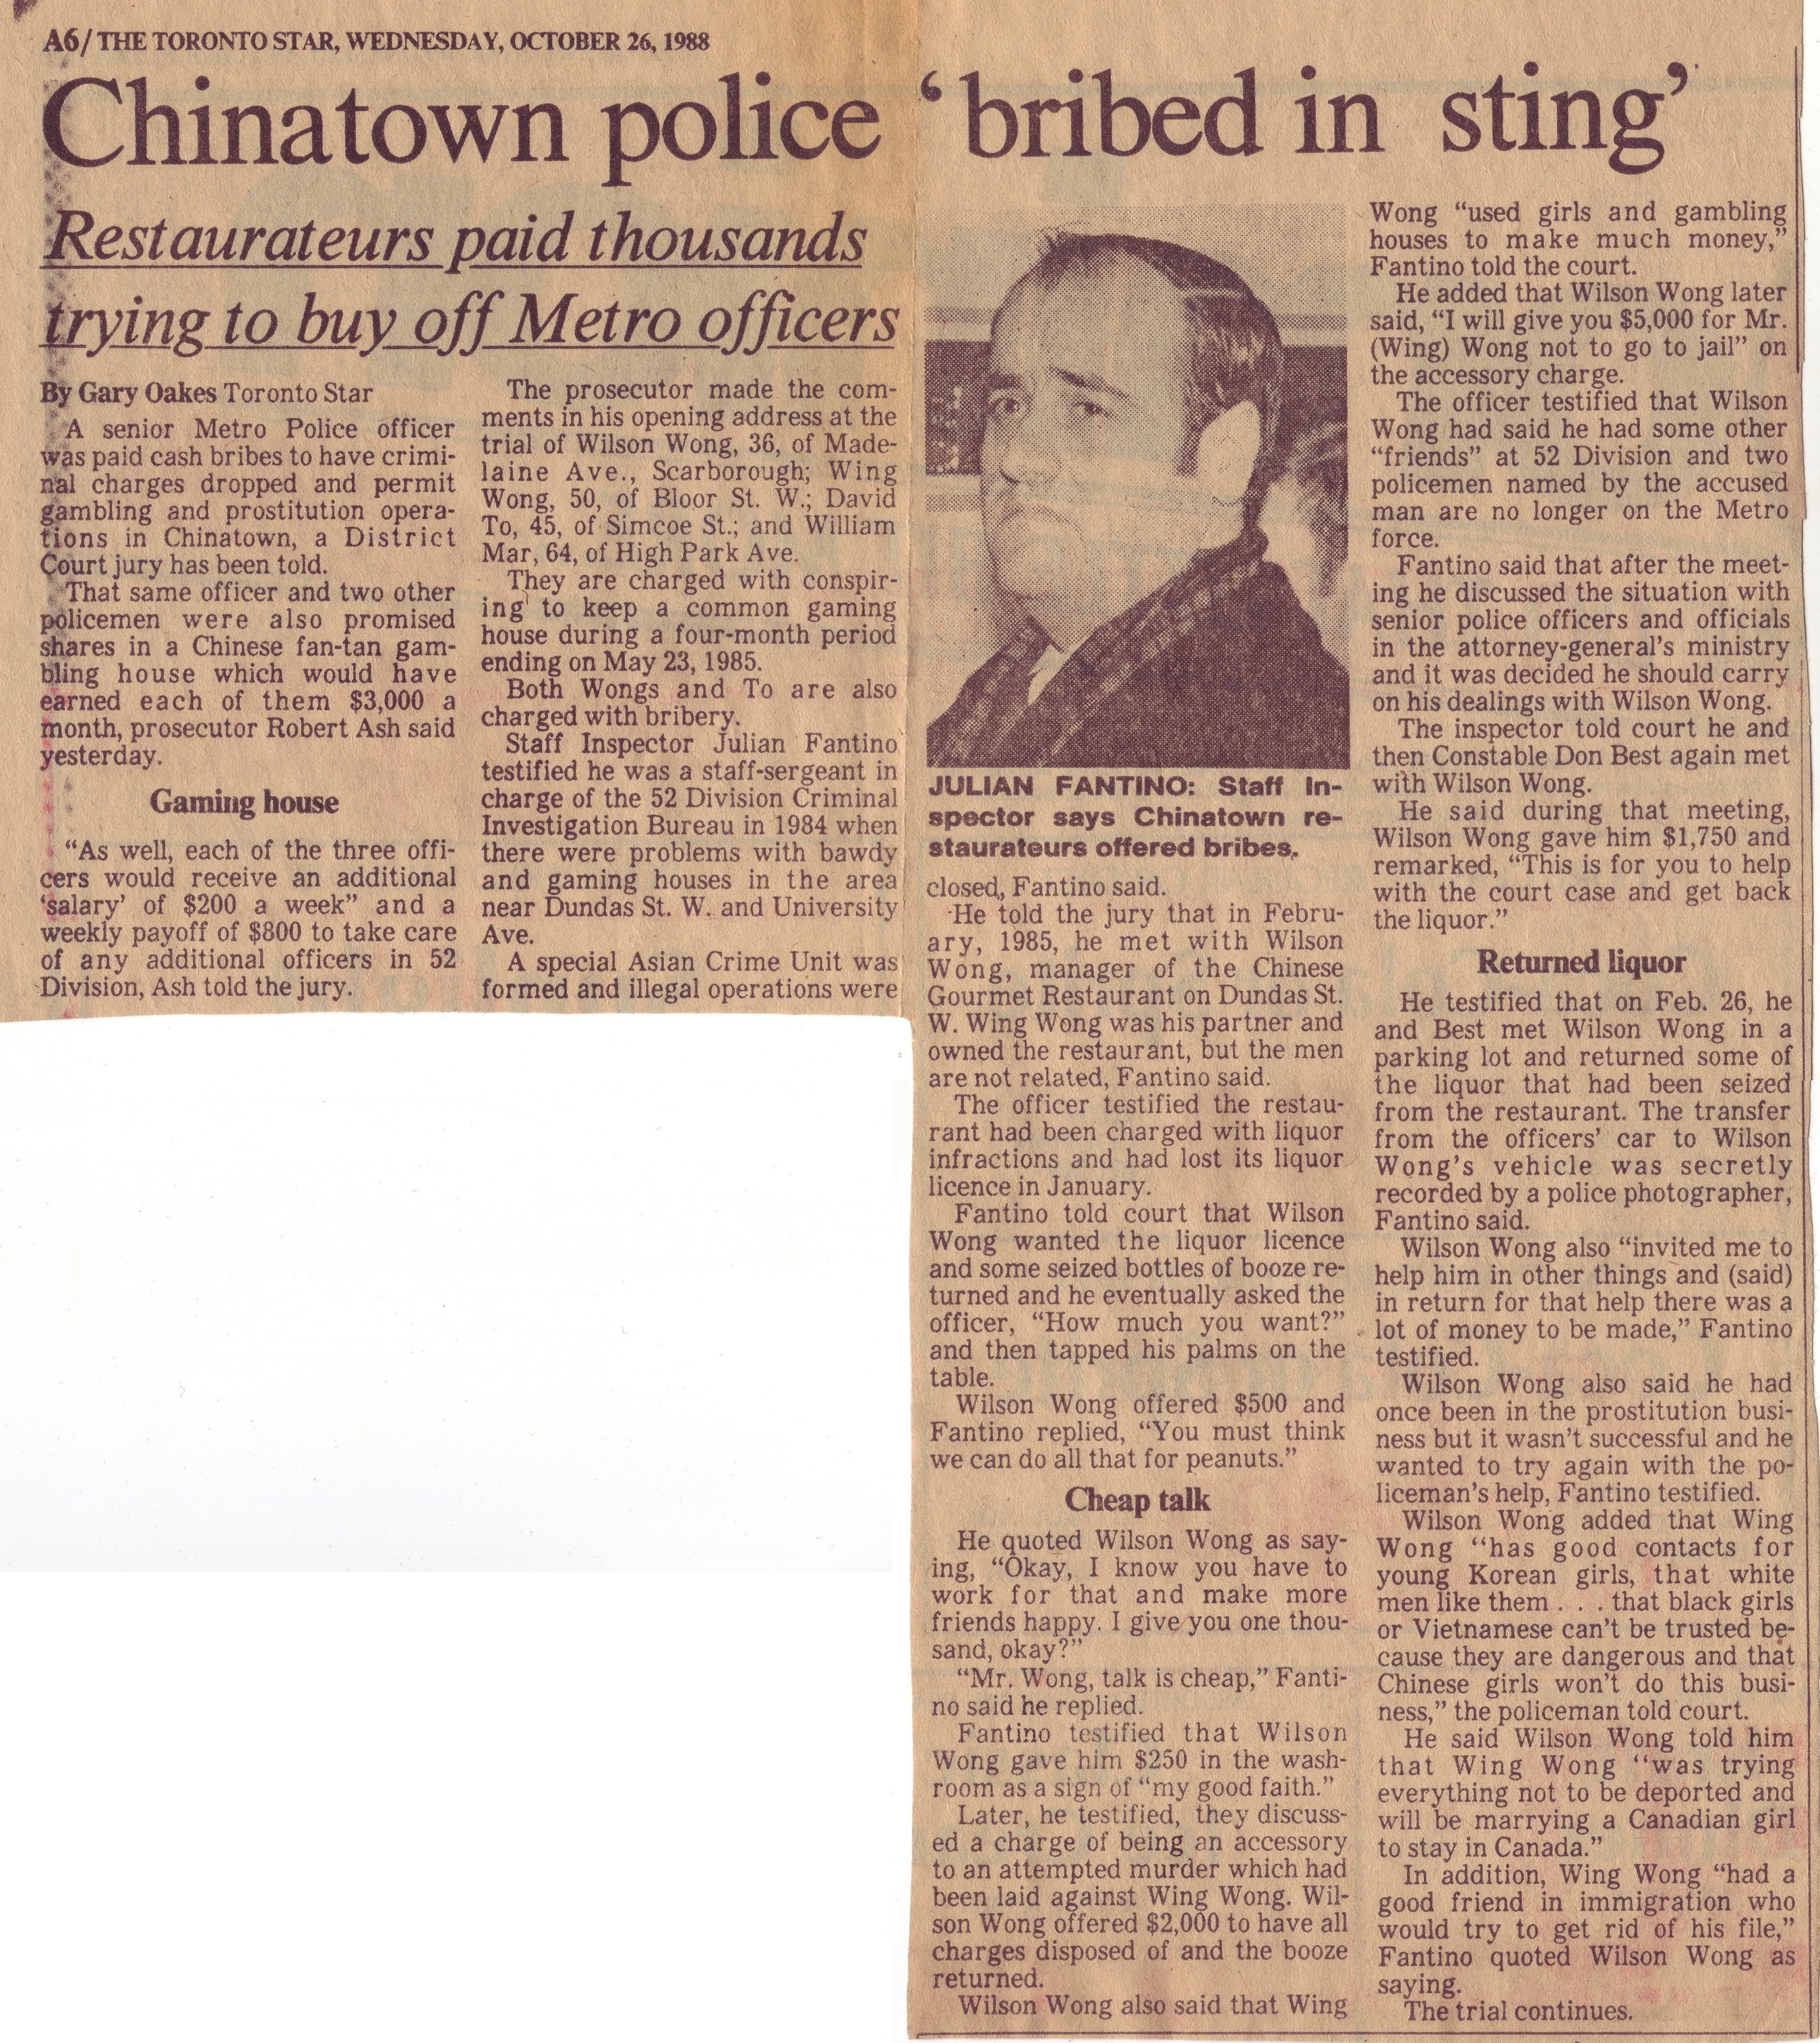 criminal profiler jim van allen ca 1988 wong trial sml private